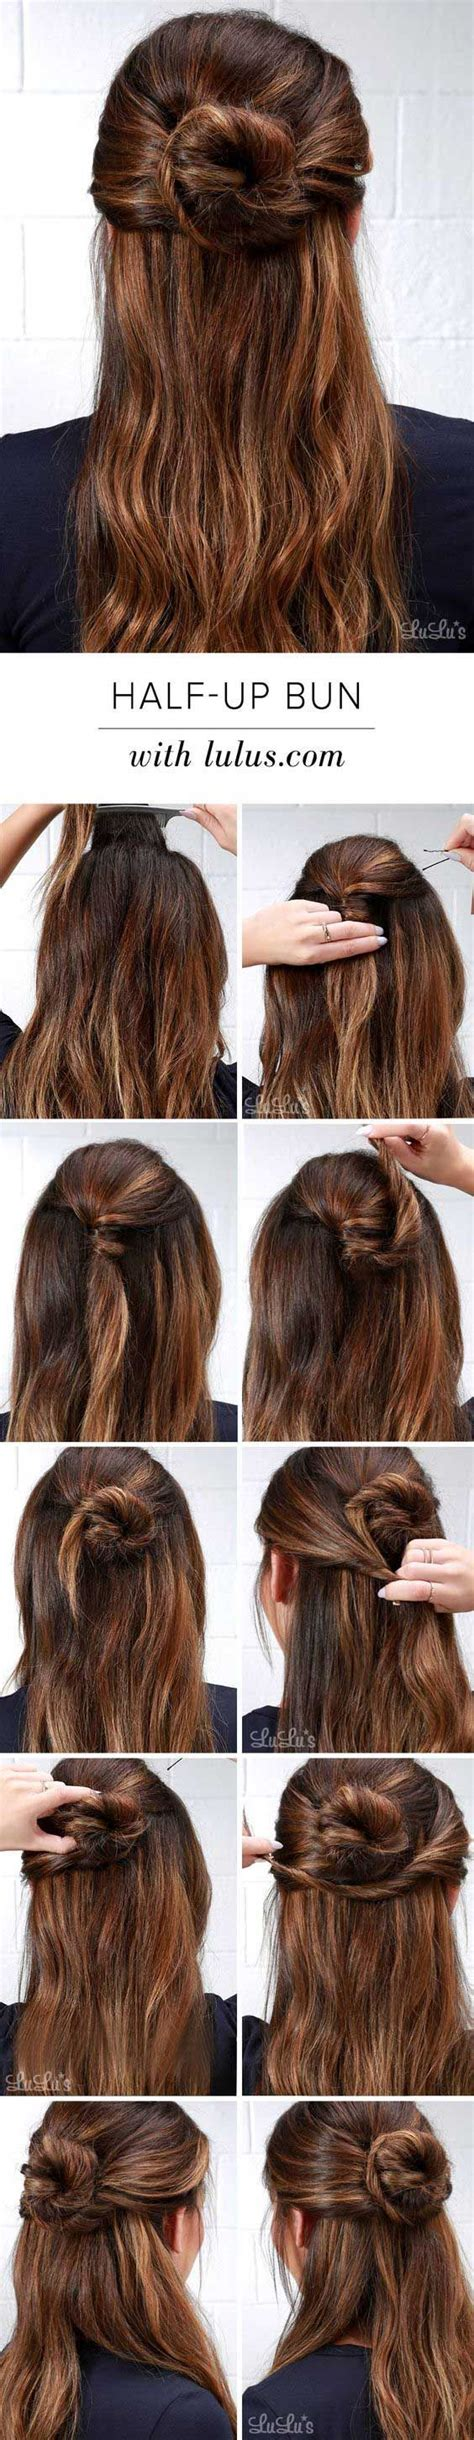 down hairstyles tutorial 18 half up half down hairstyle tutorials perfect for prom